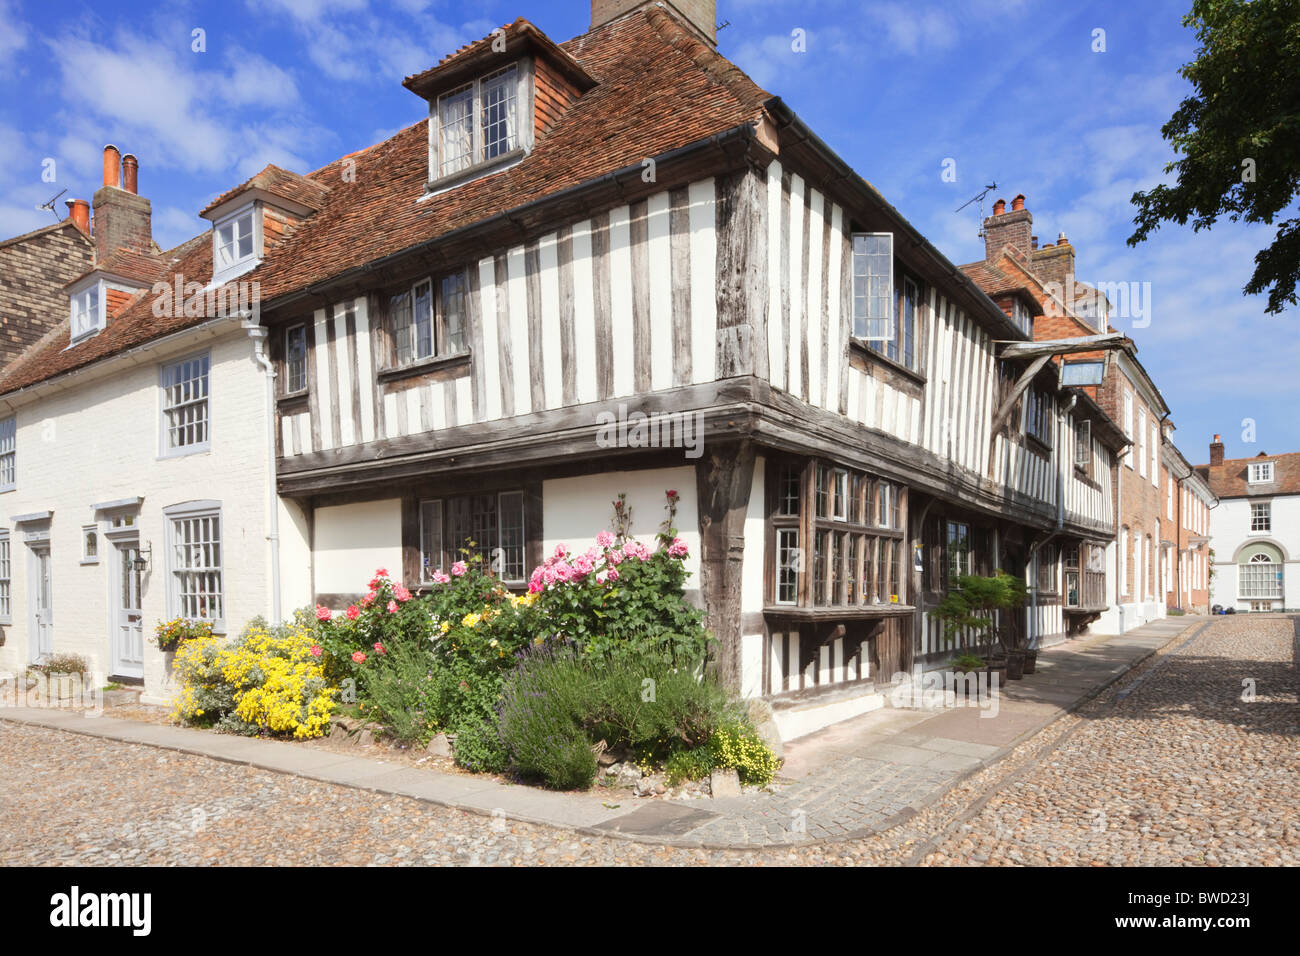 Watchbell Street ; Seigle ; East Sussex, Angleterre, Grande-Bretagne Photo Stock